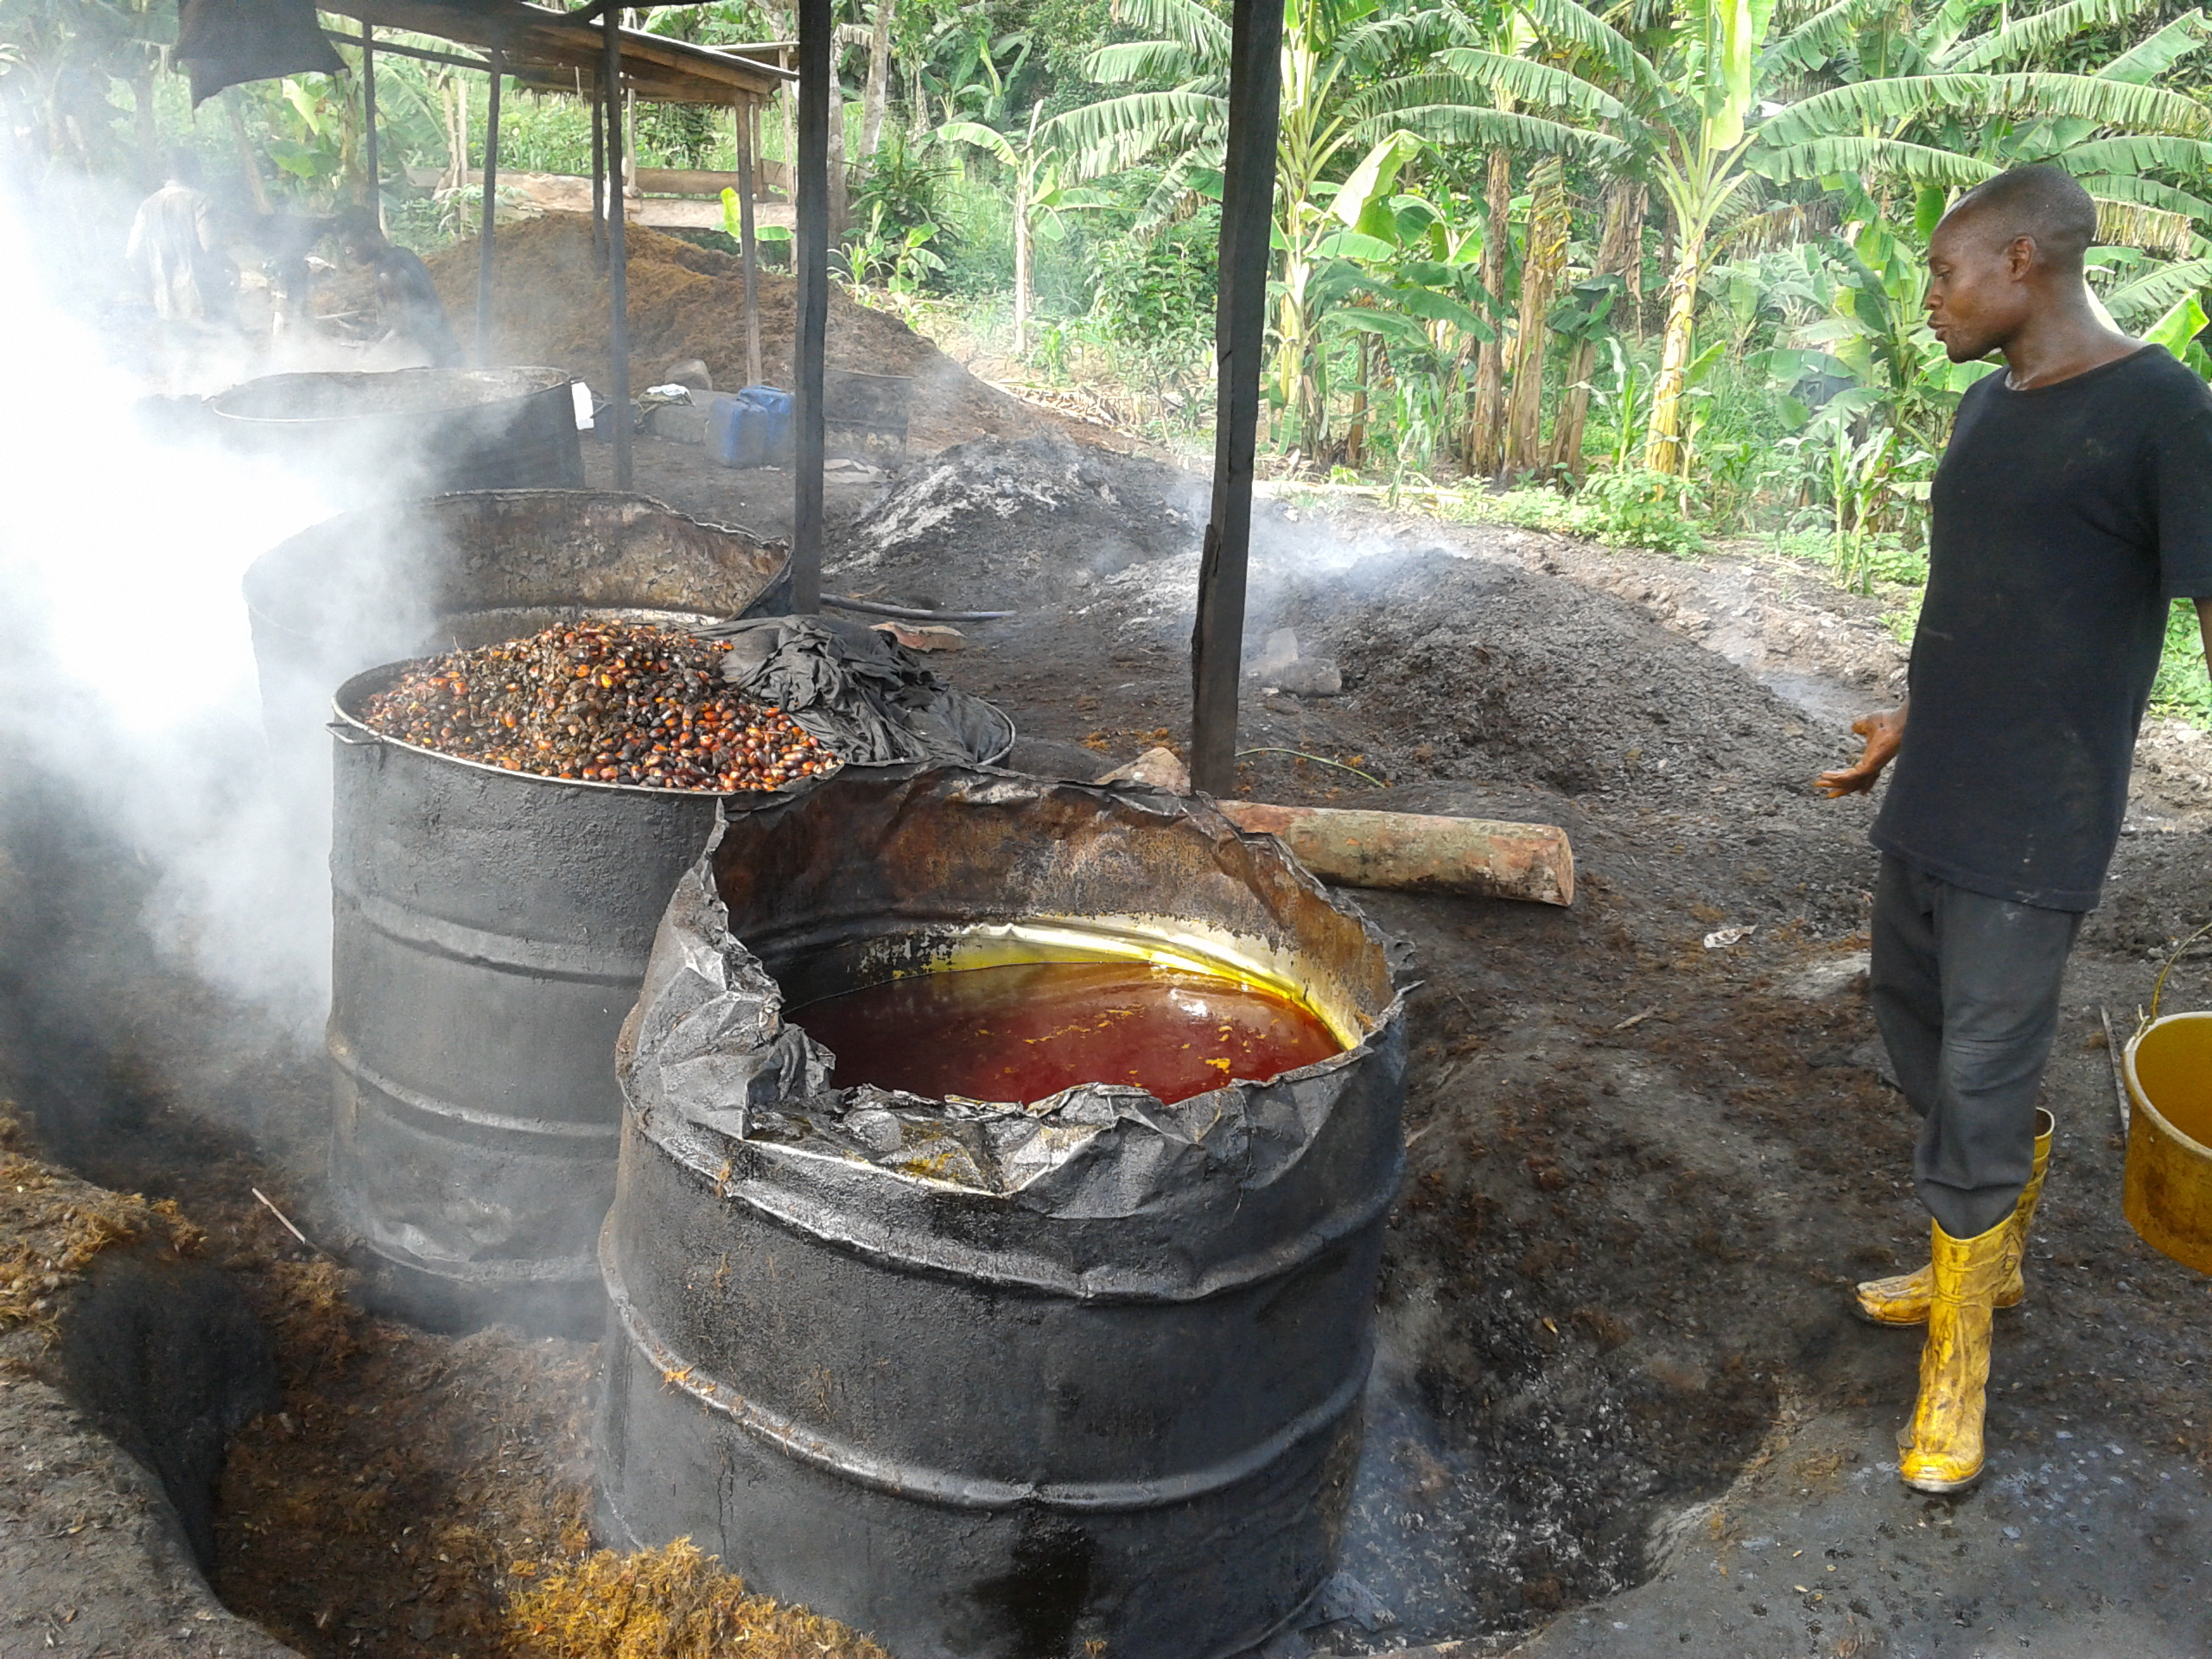 The process of processing palm fruit